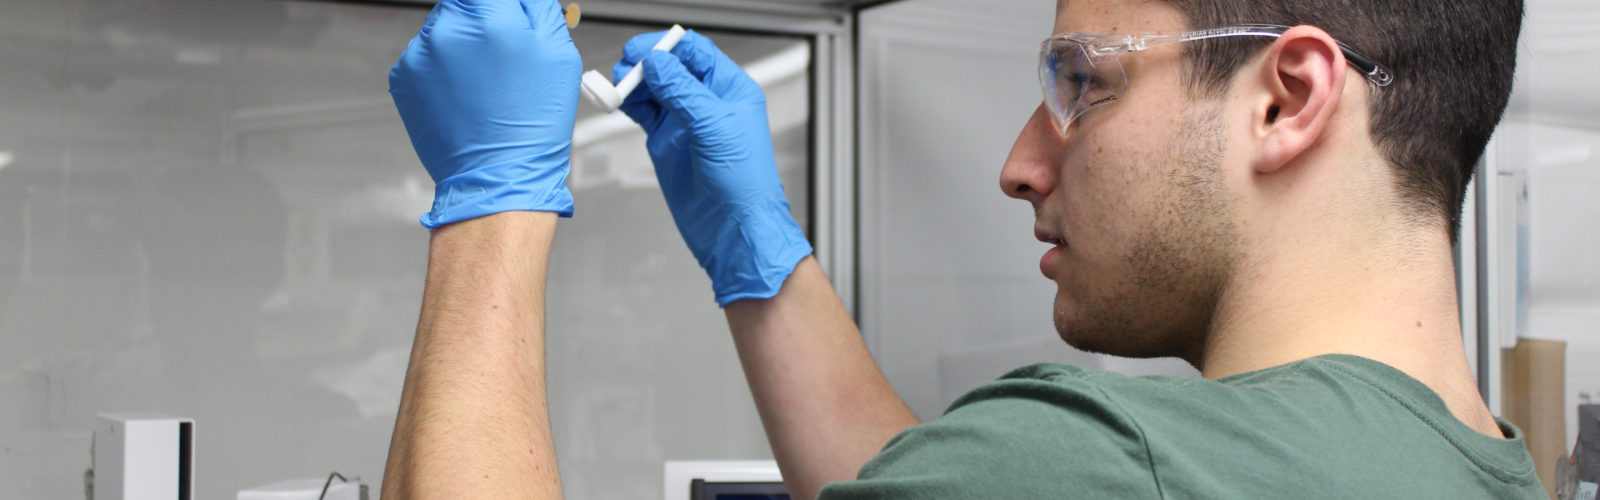 Student examining an object in a fume hood.